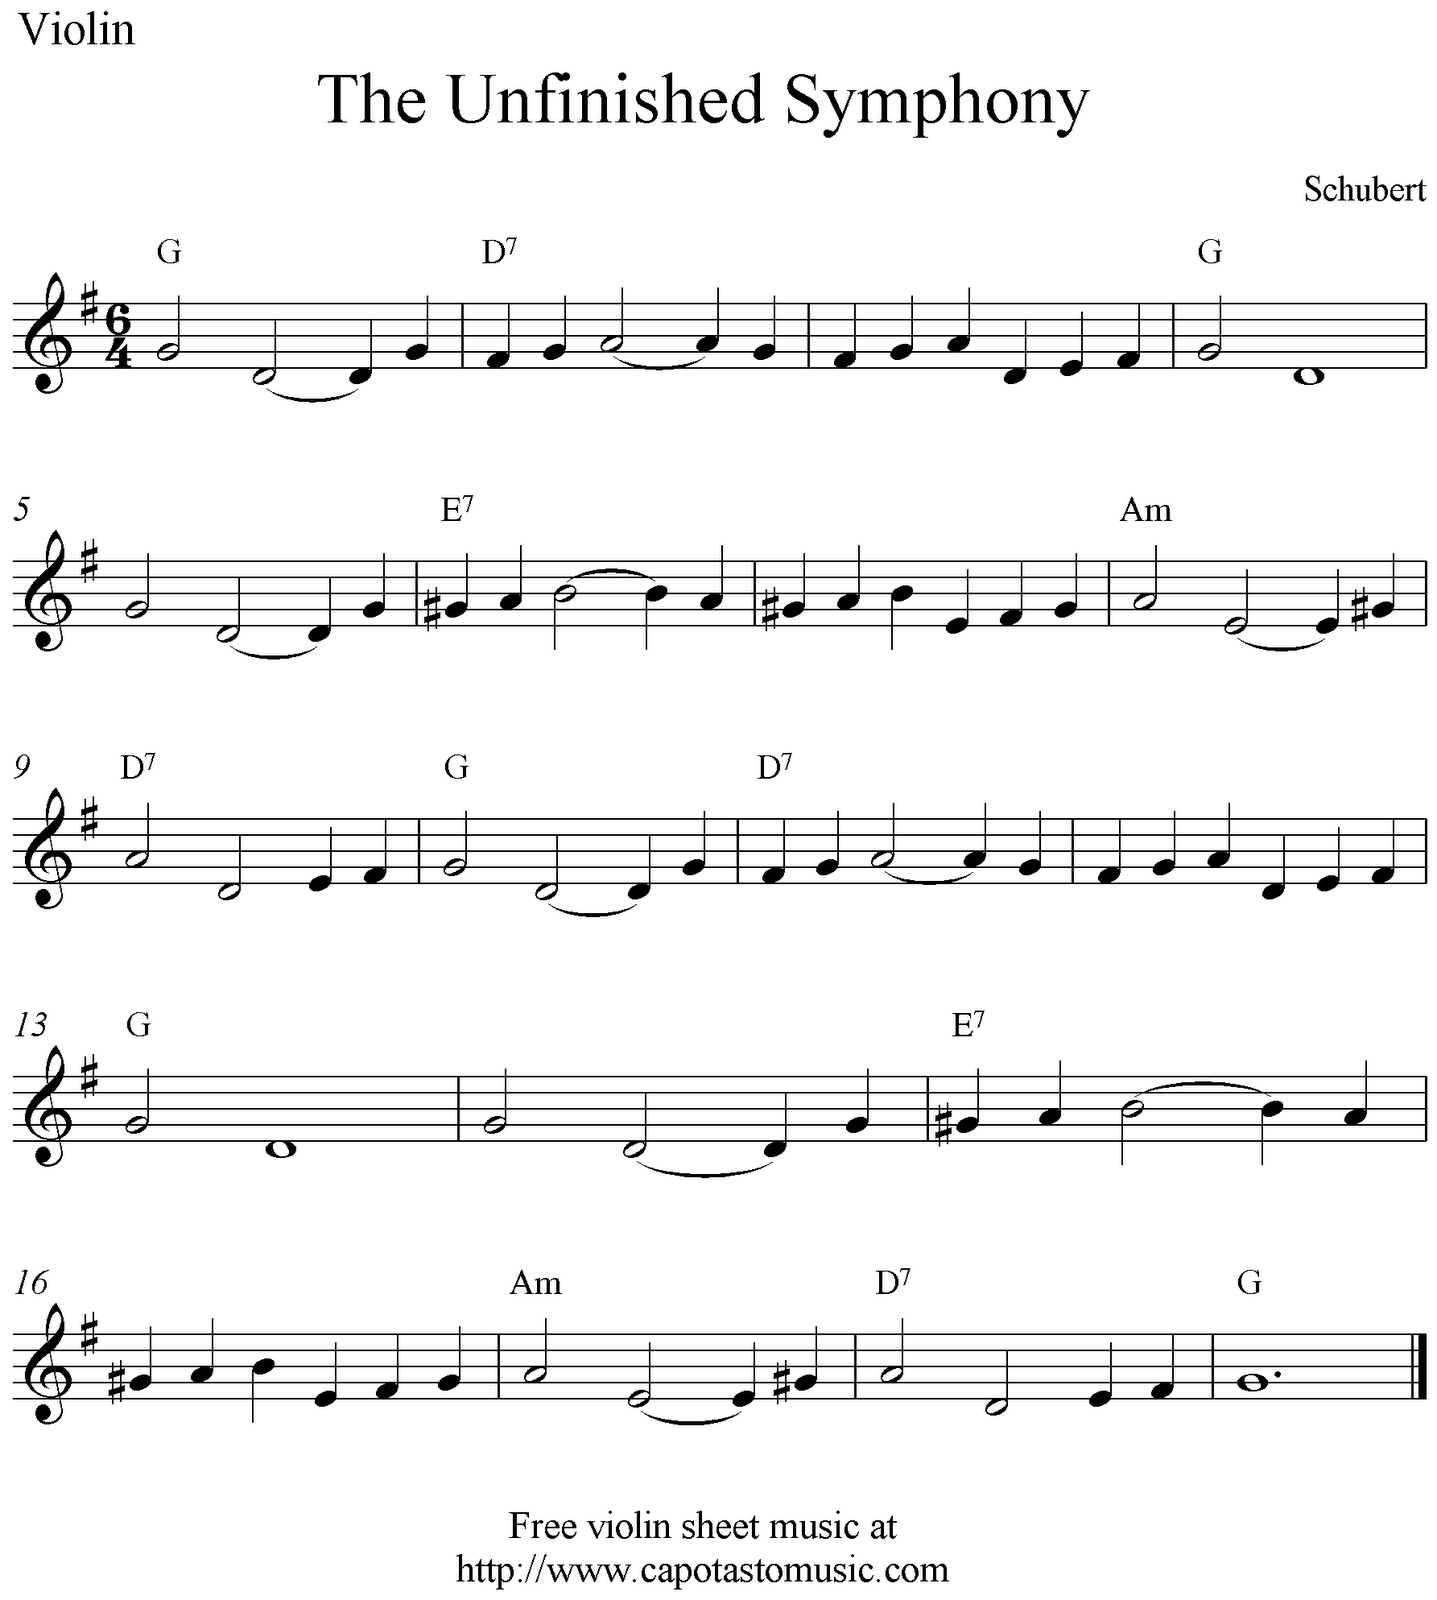 Free Sheet Music Scores: The Unfinished Symphony, free